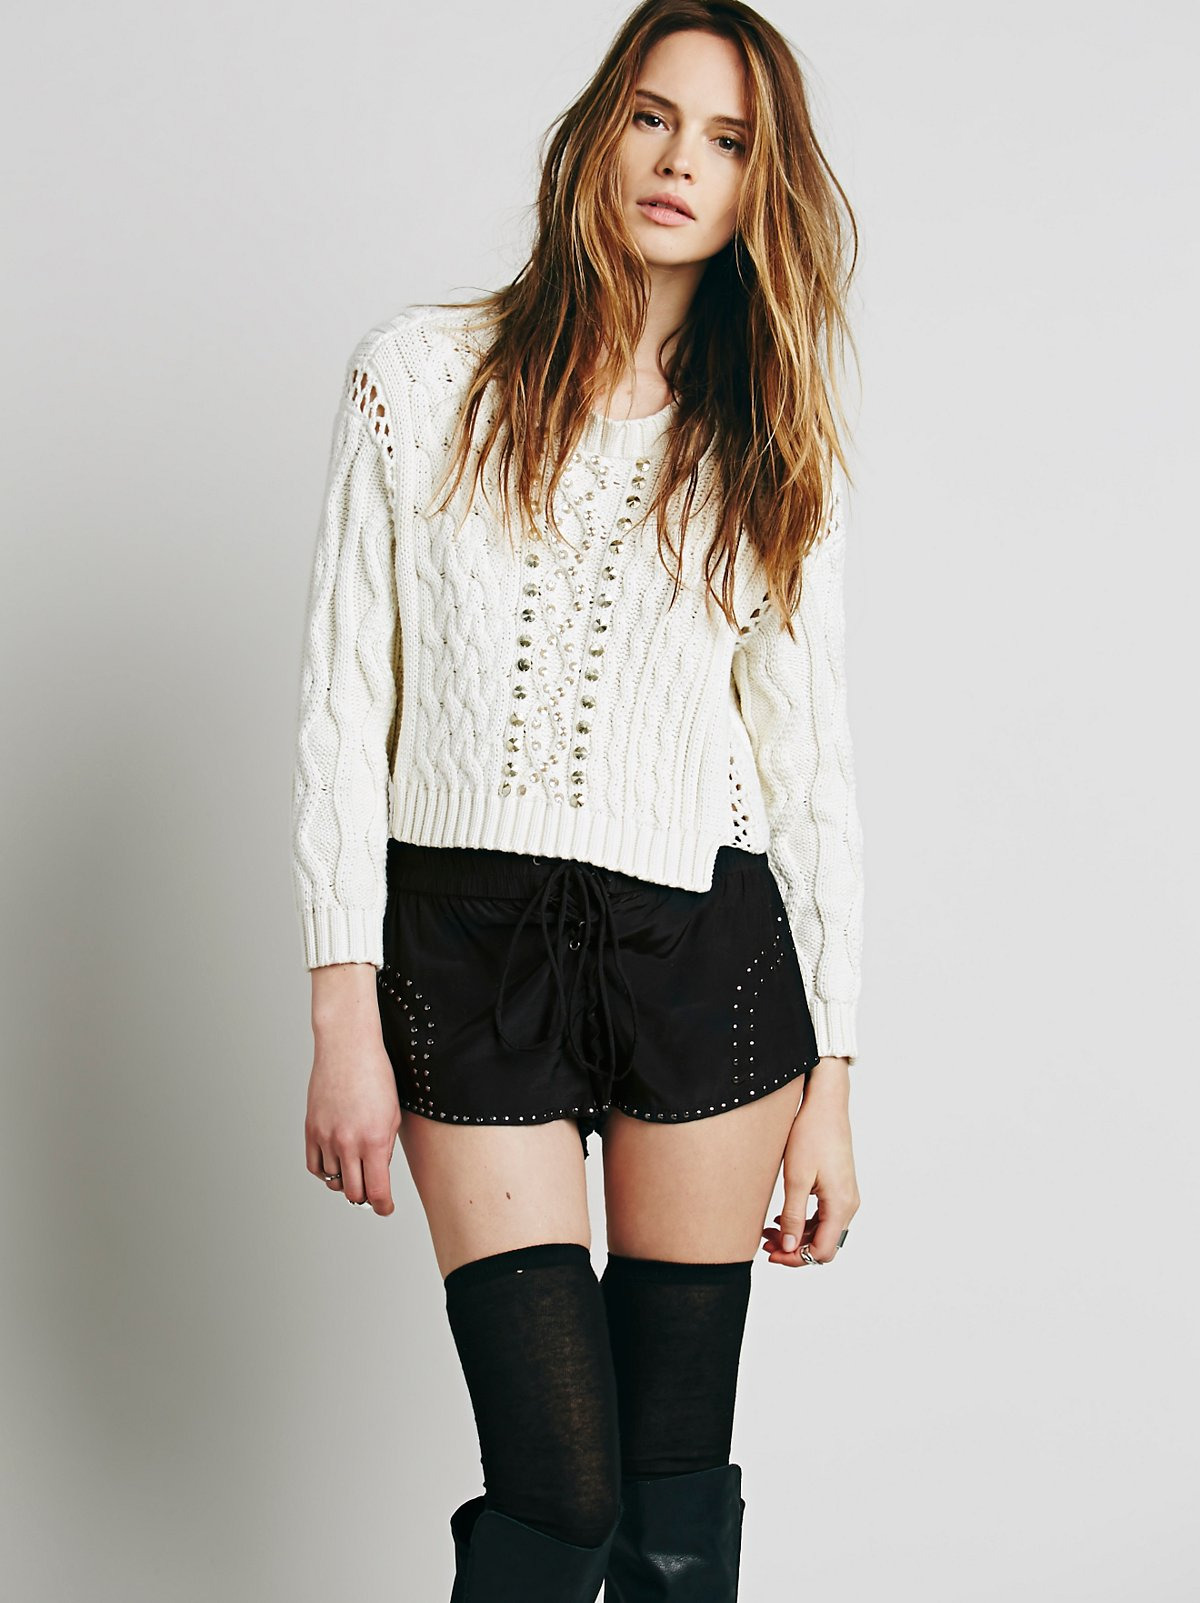 Grace Kelly Studded Short